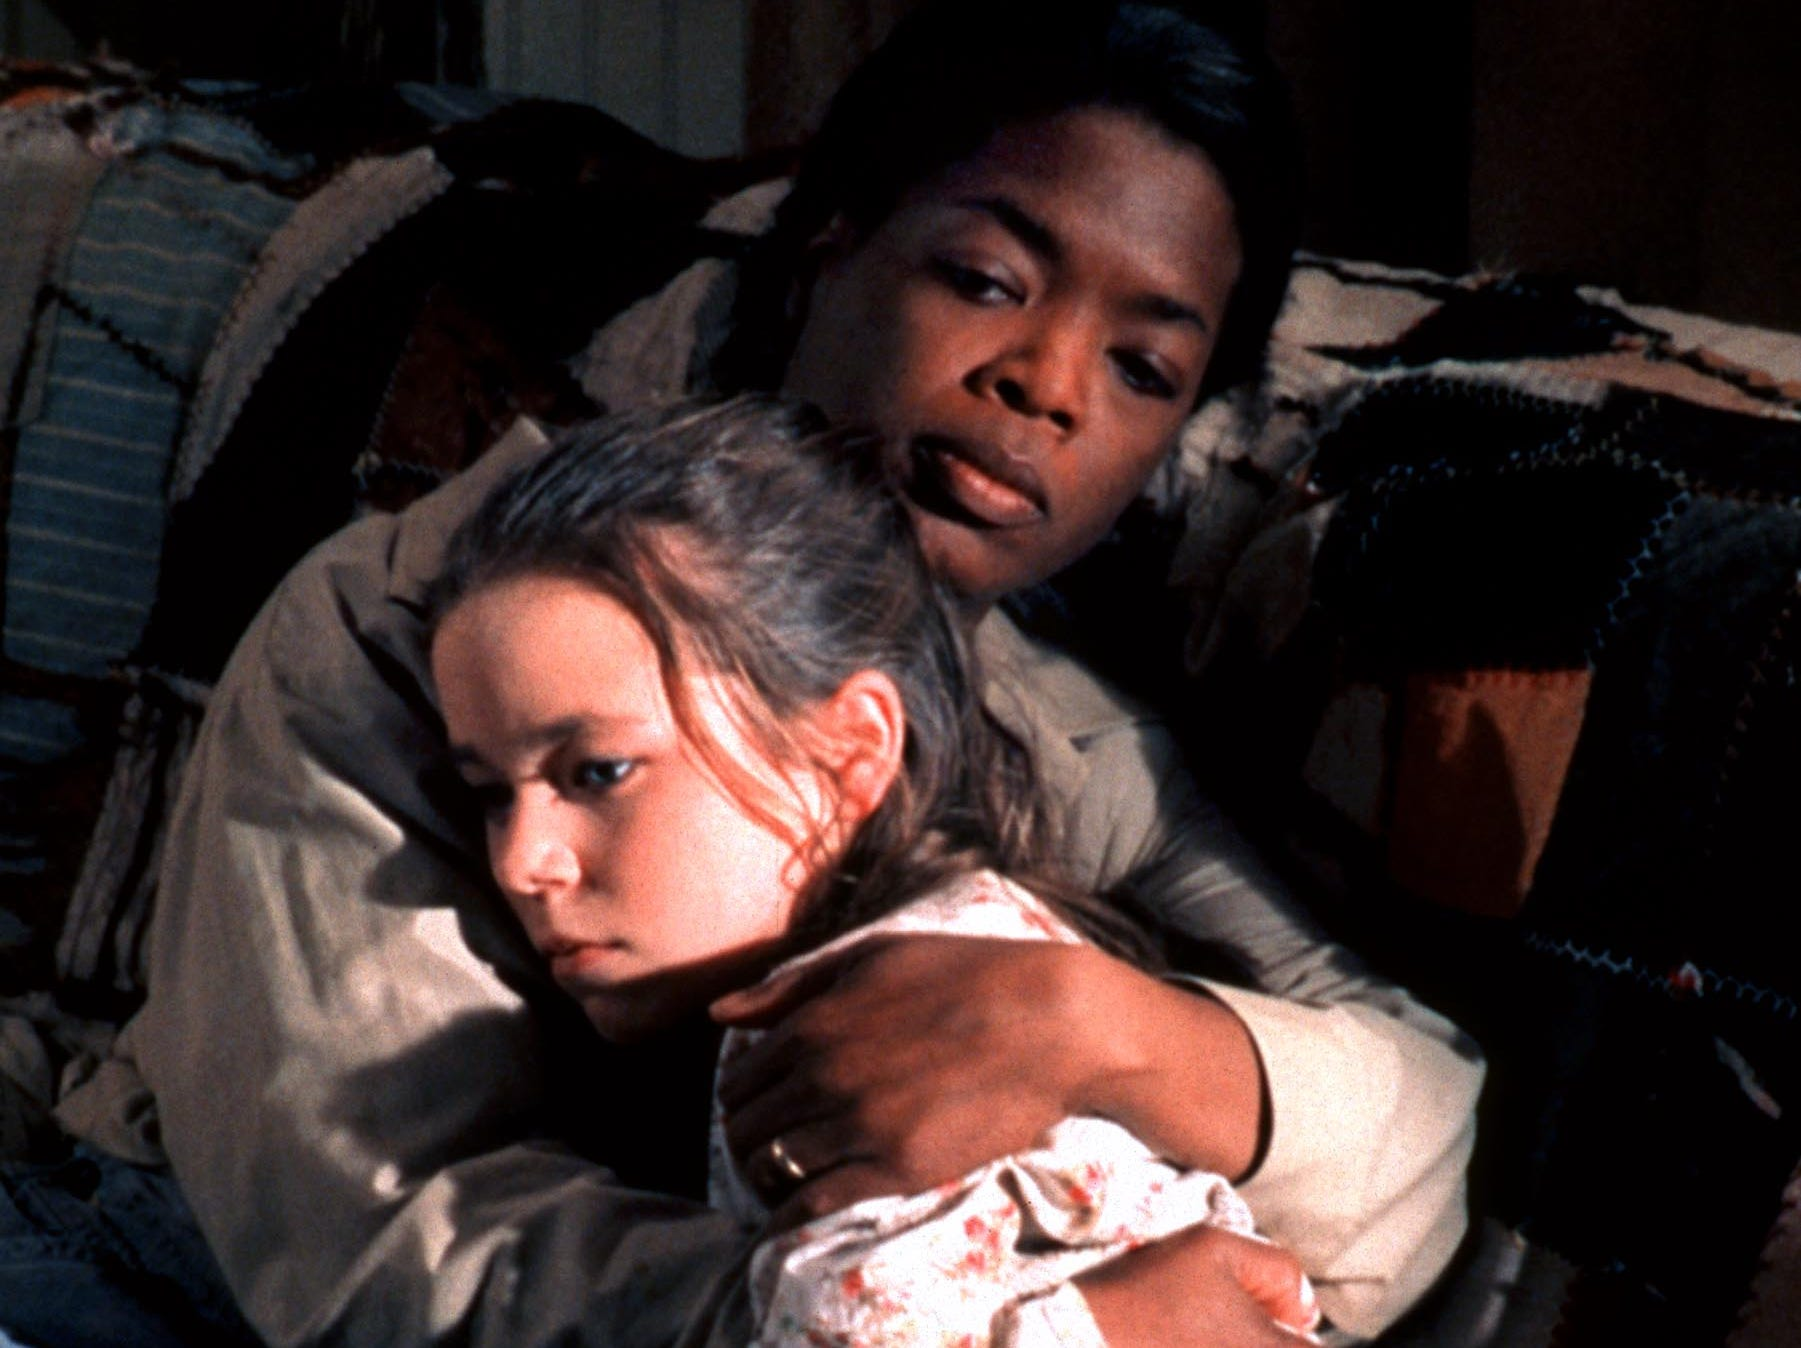 'Before Women Had Wings' | In 1997, Oprah took yet another go at a TV movie with 'Wings.' She produced the film and played Zora, a kind woman who helps save two daughters from an abusive mother, played by Ellen Barkin (who received an Emmy award for her portrayal of the violent Glory Marie). In this scene, Zora (Winfrey) comforts Avocet (played by Tina Majorino).